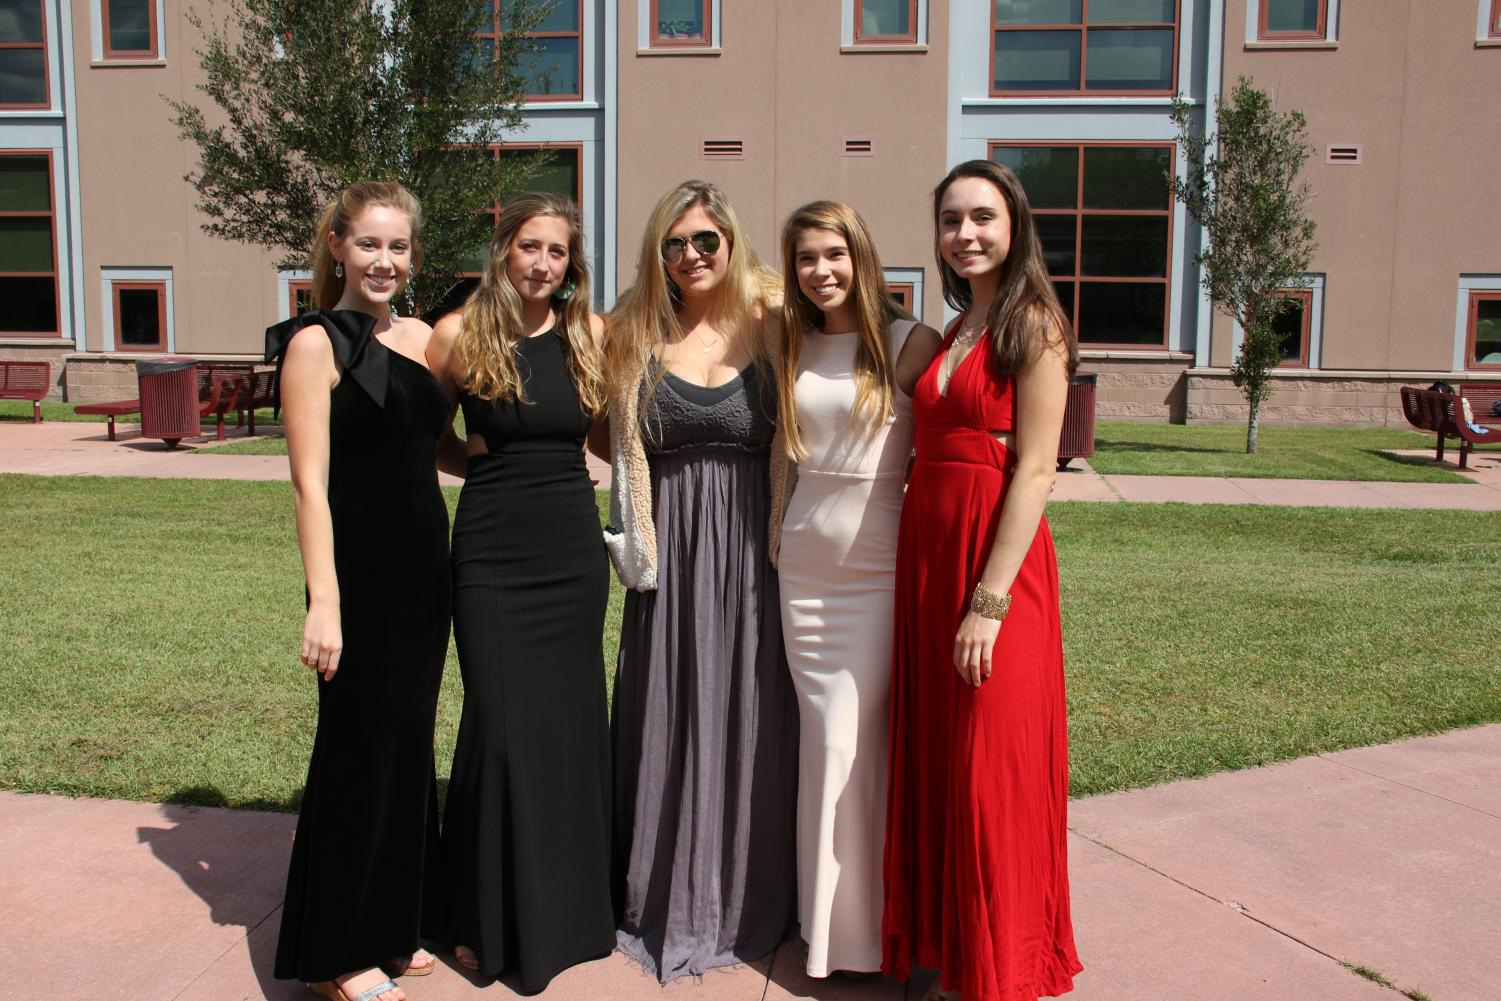 The+seniors+were+red+carpet+ready.